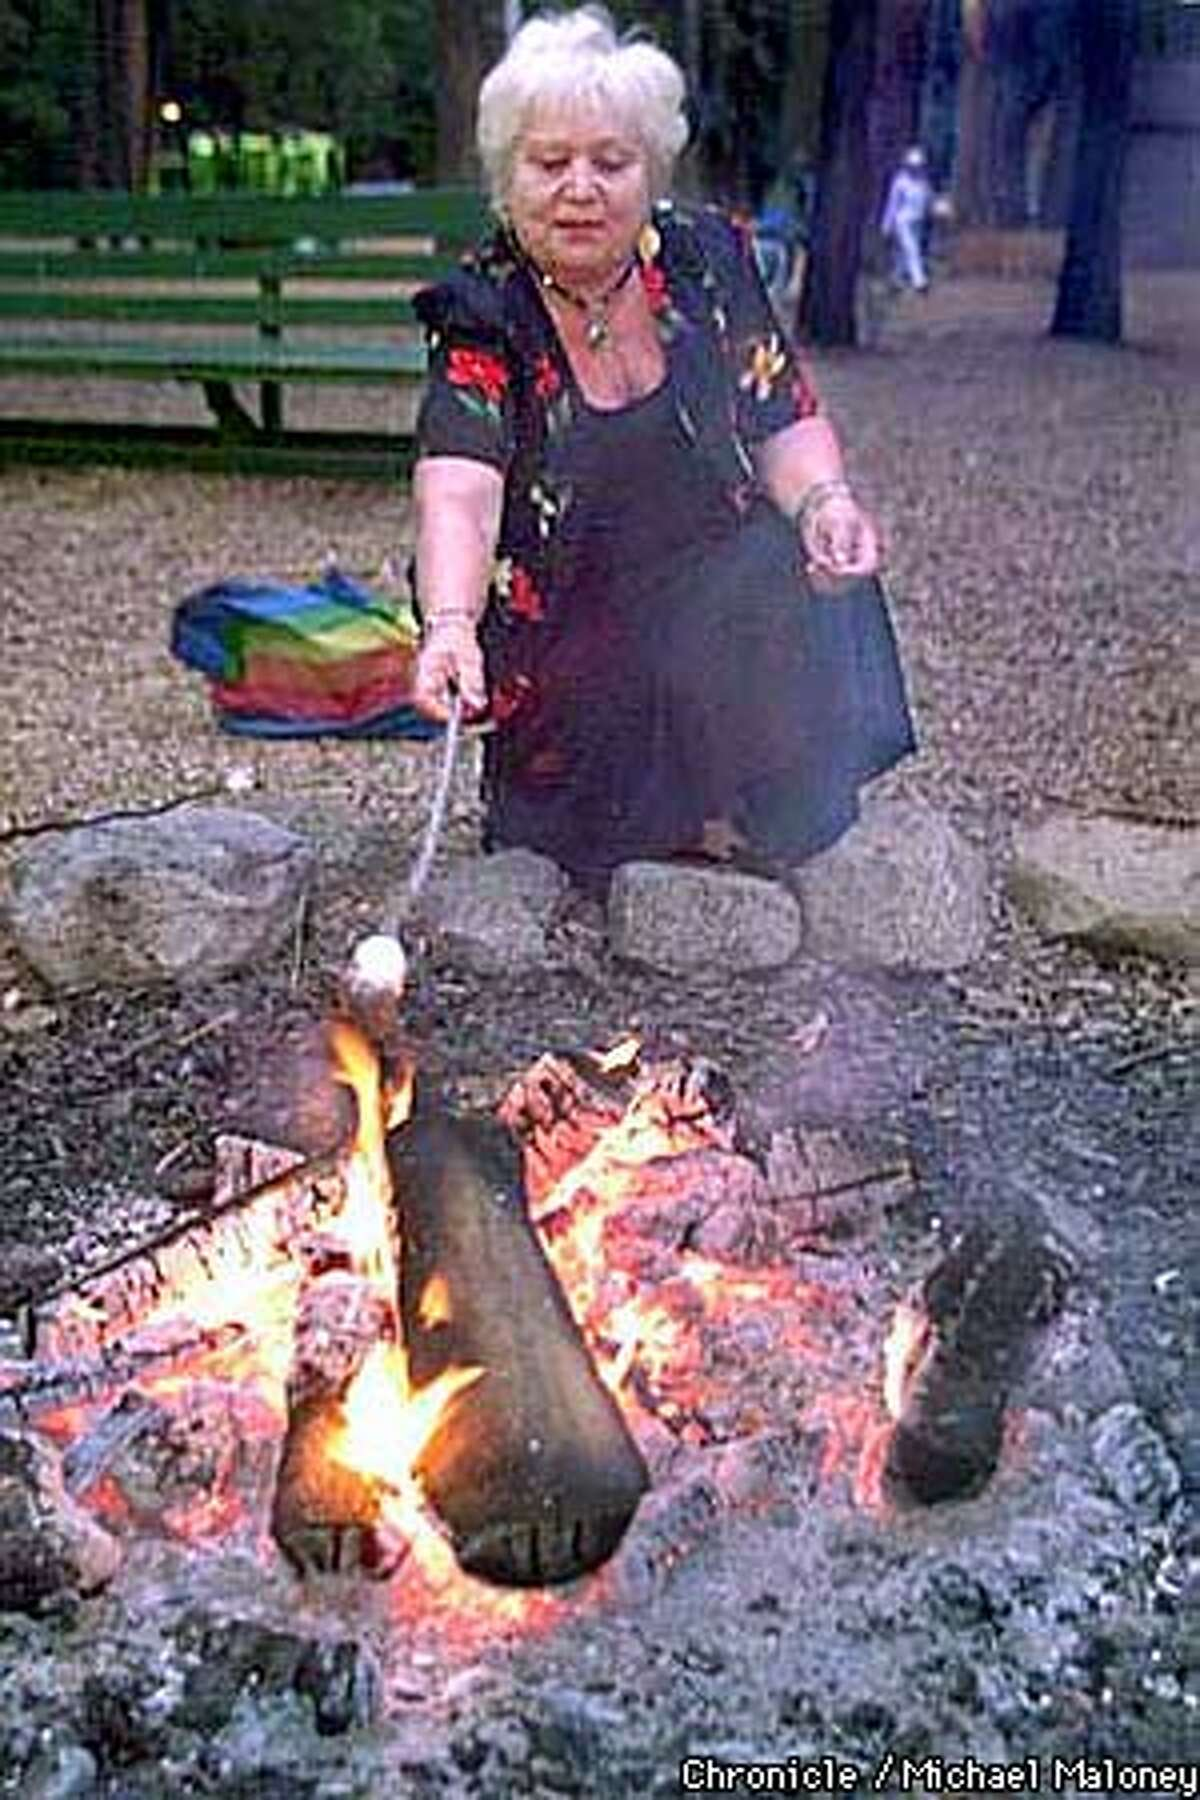 63 year old Adele Bantov roasts marshmallows for the first time over an open campfire. She was wearing a dress to participate in a social gathering at the Evergreen Lodge later in the evening. Camp Mather is a city-run camp now celebrating its 75th year. Over 170 seniors relived their youth and camped out at the site near Yosemite. Chronicle Photo by Michael Maloney